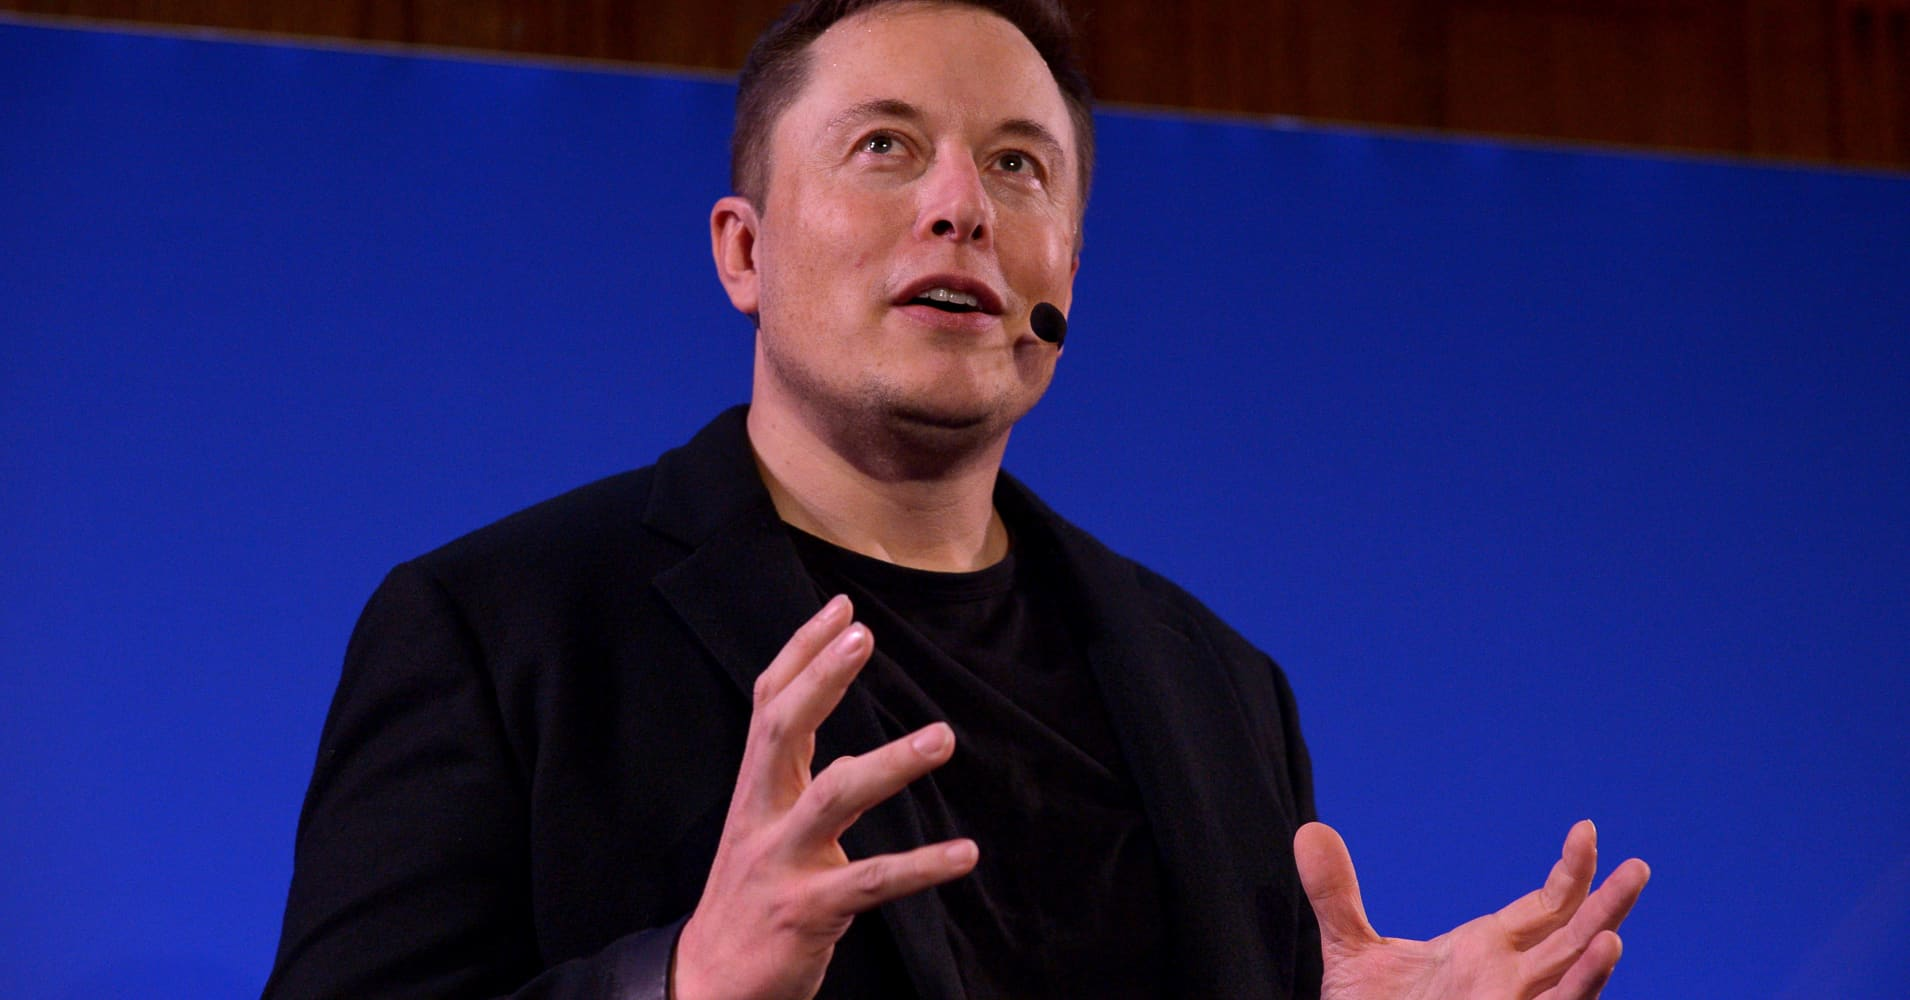 Scientists think Facebook and Elon Musk are way too optimistic about mind-reading tech